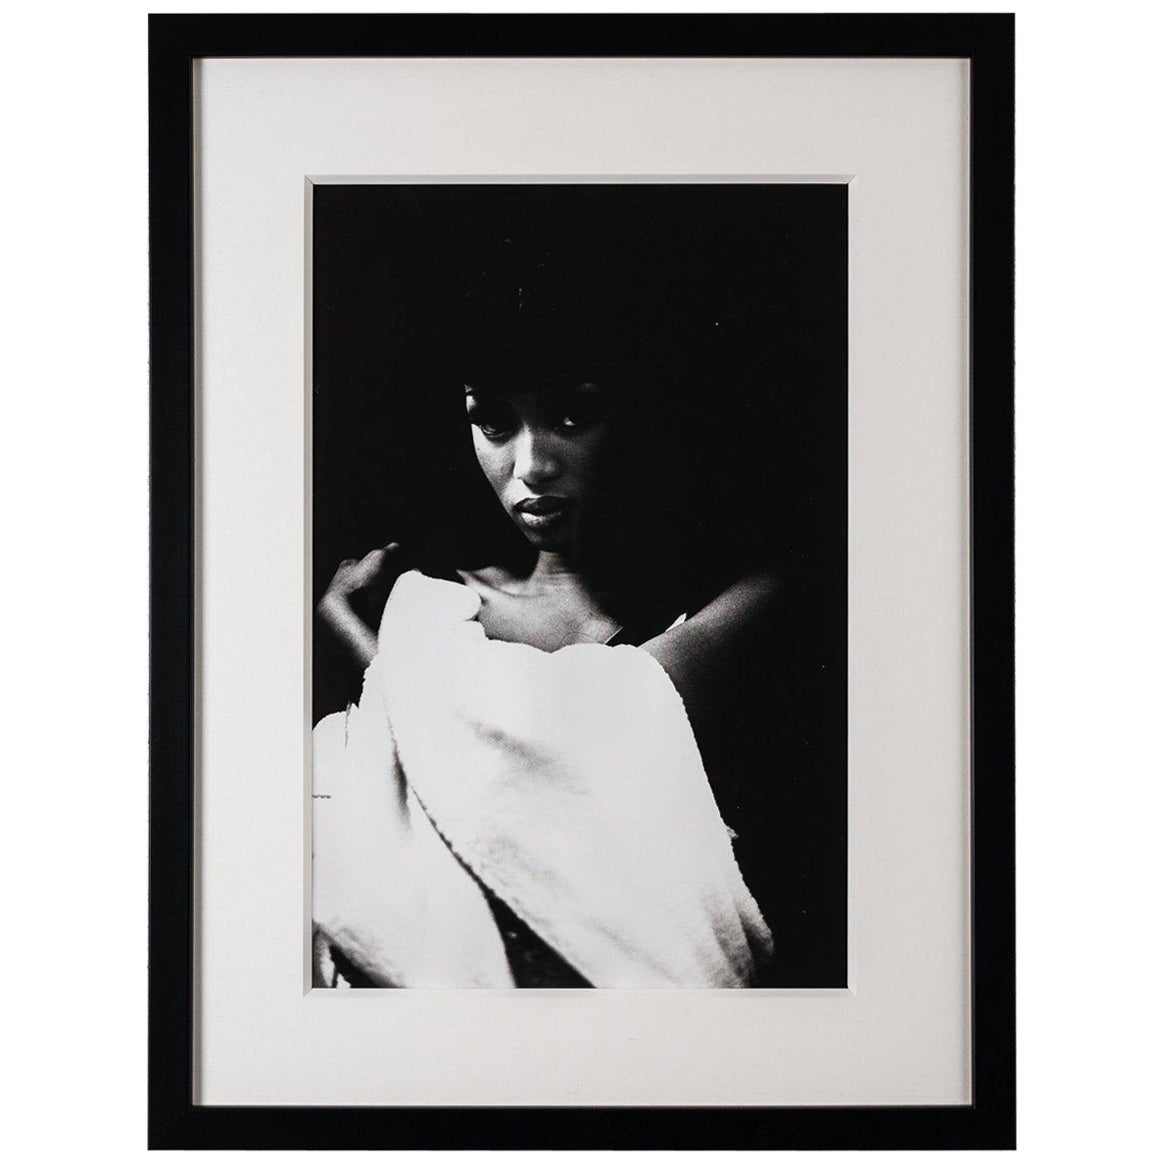 Original Photograph of Naomi Campbell by Karl Lagerfeld